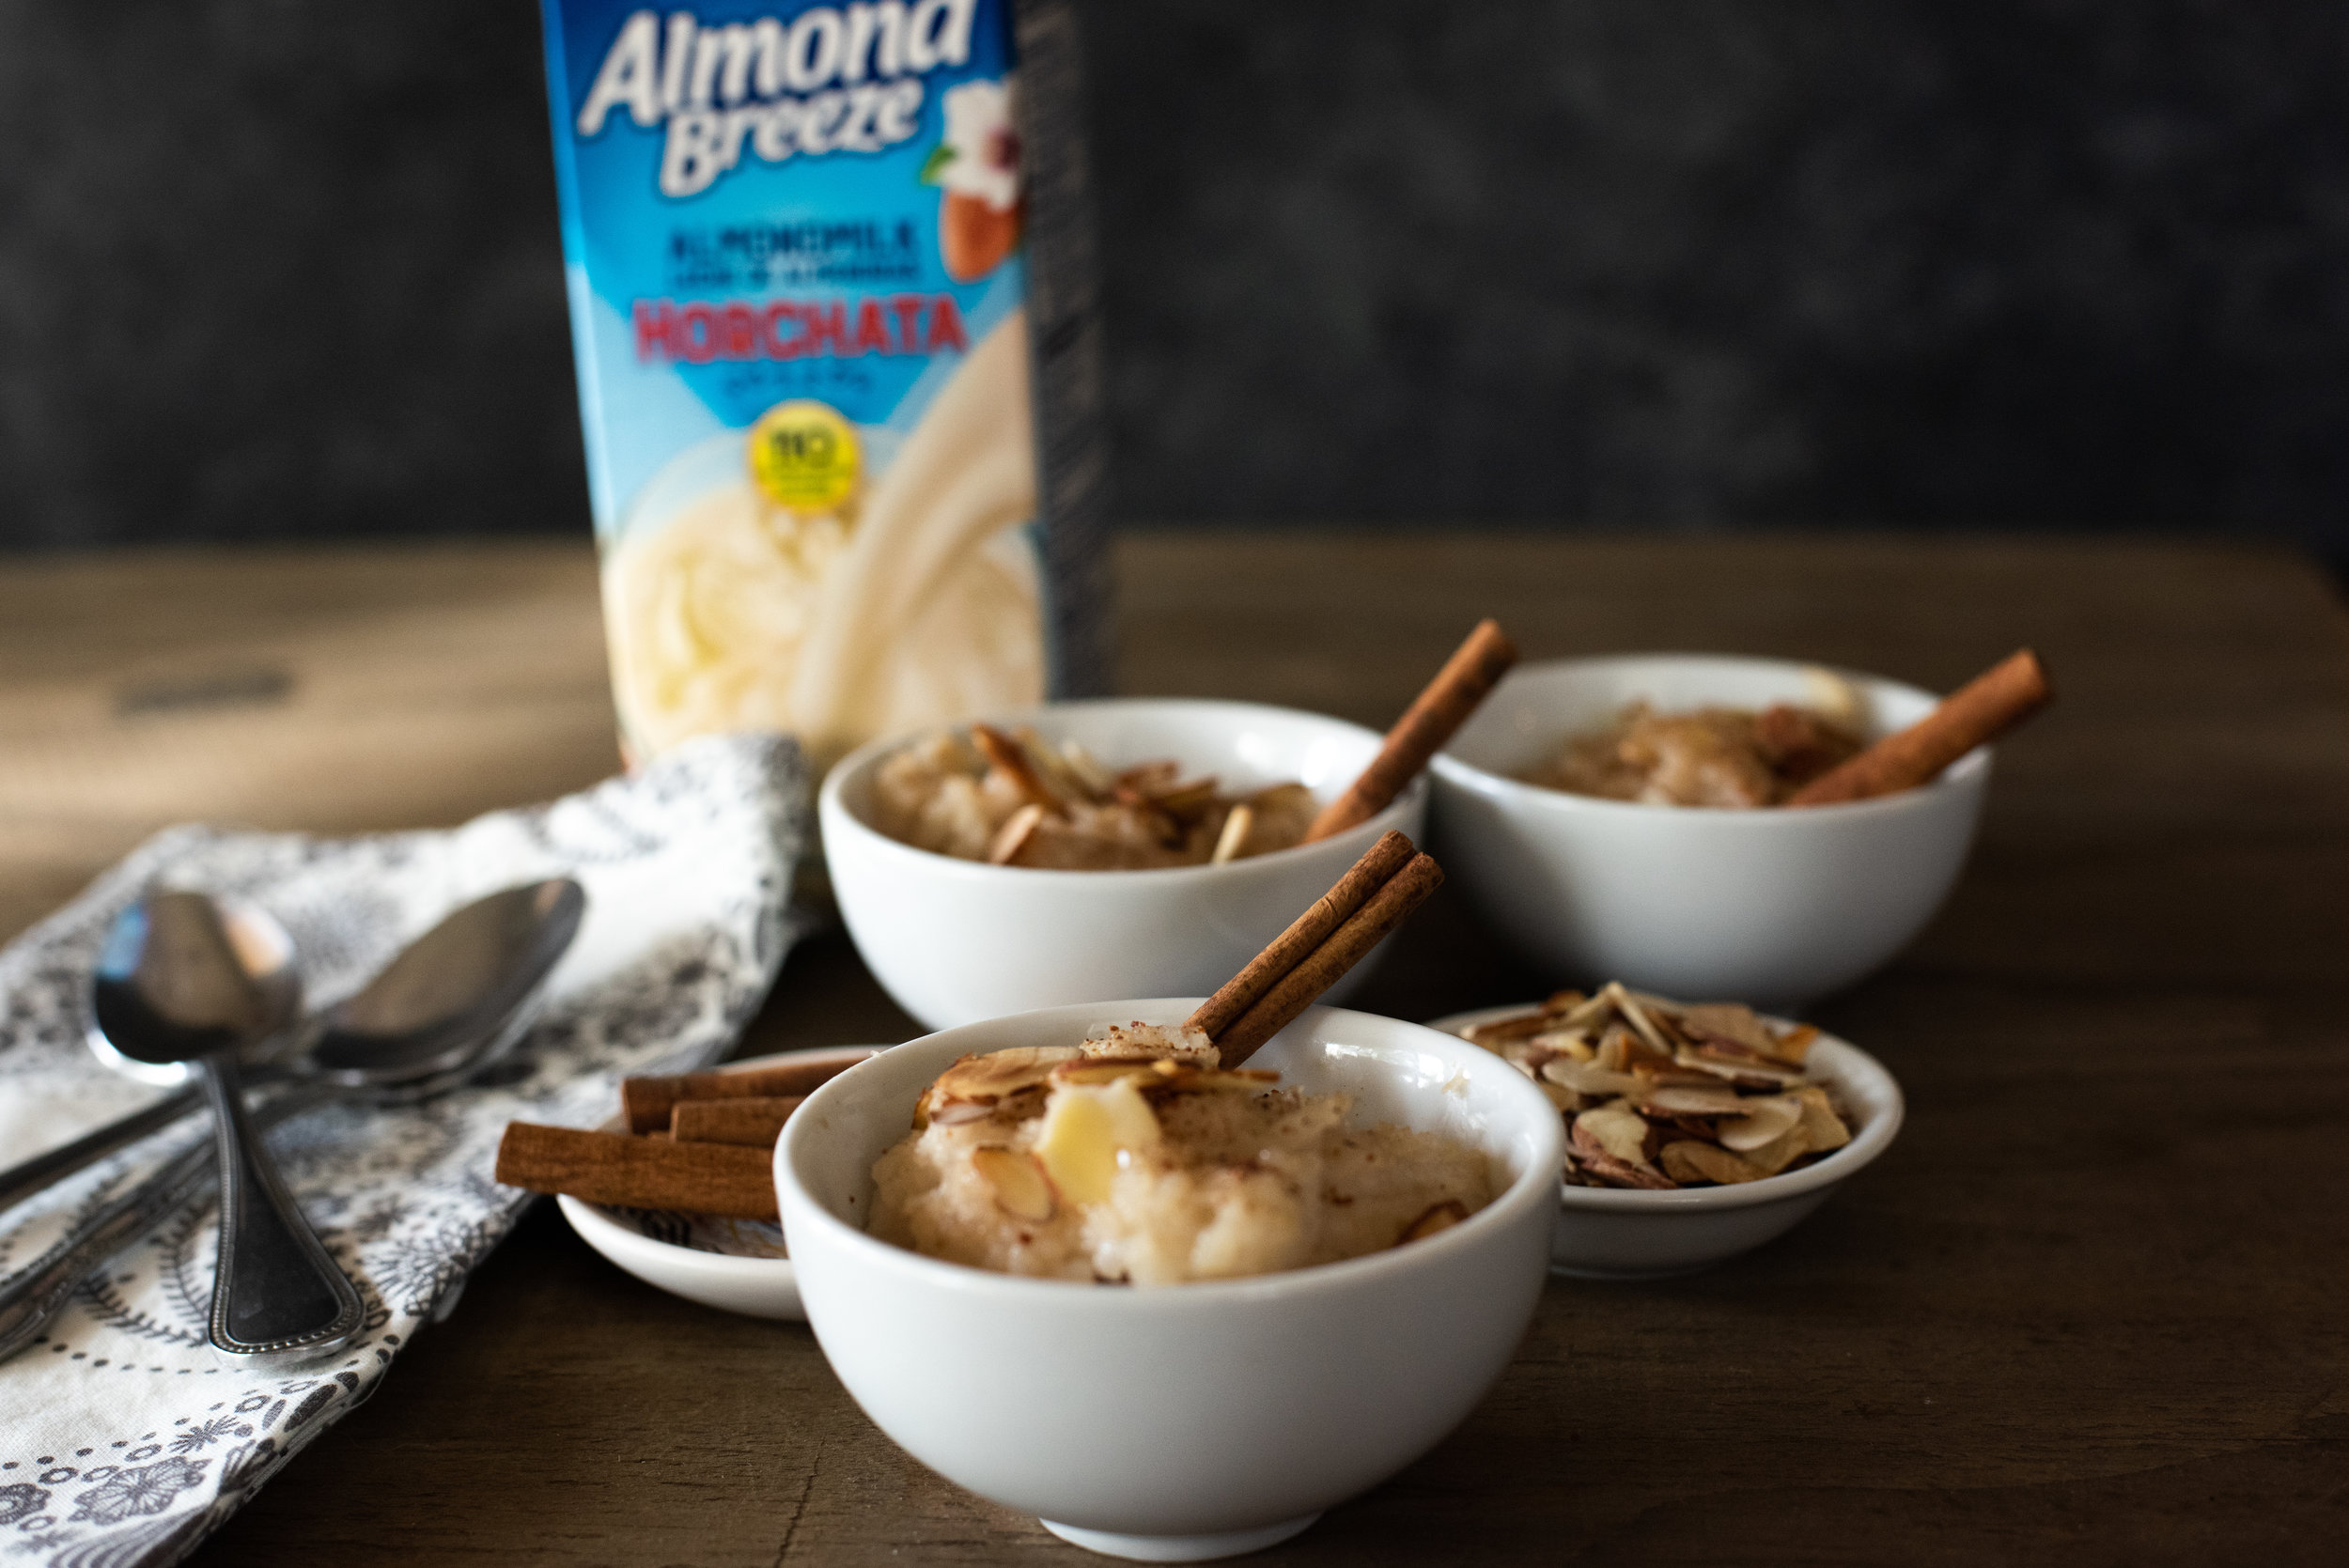 Almond Breeze Horchata Rice Pudding